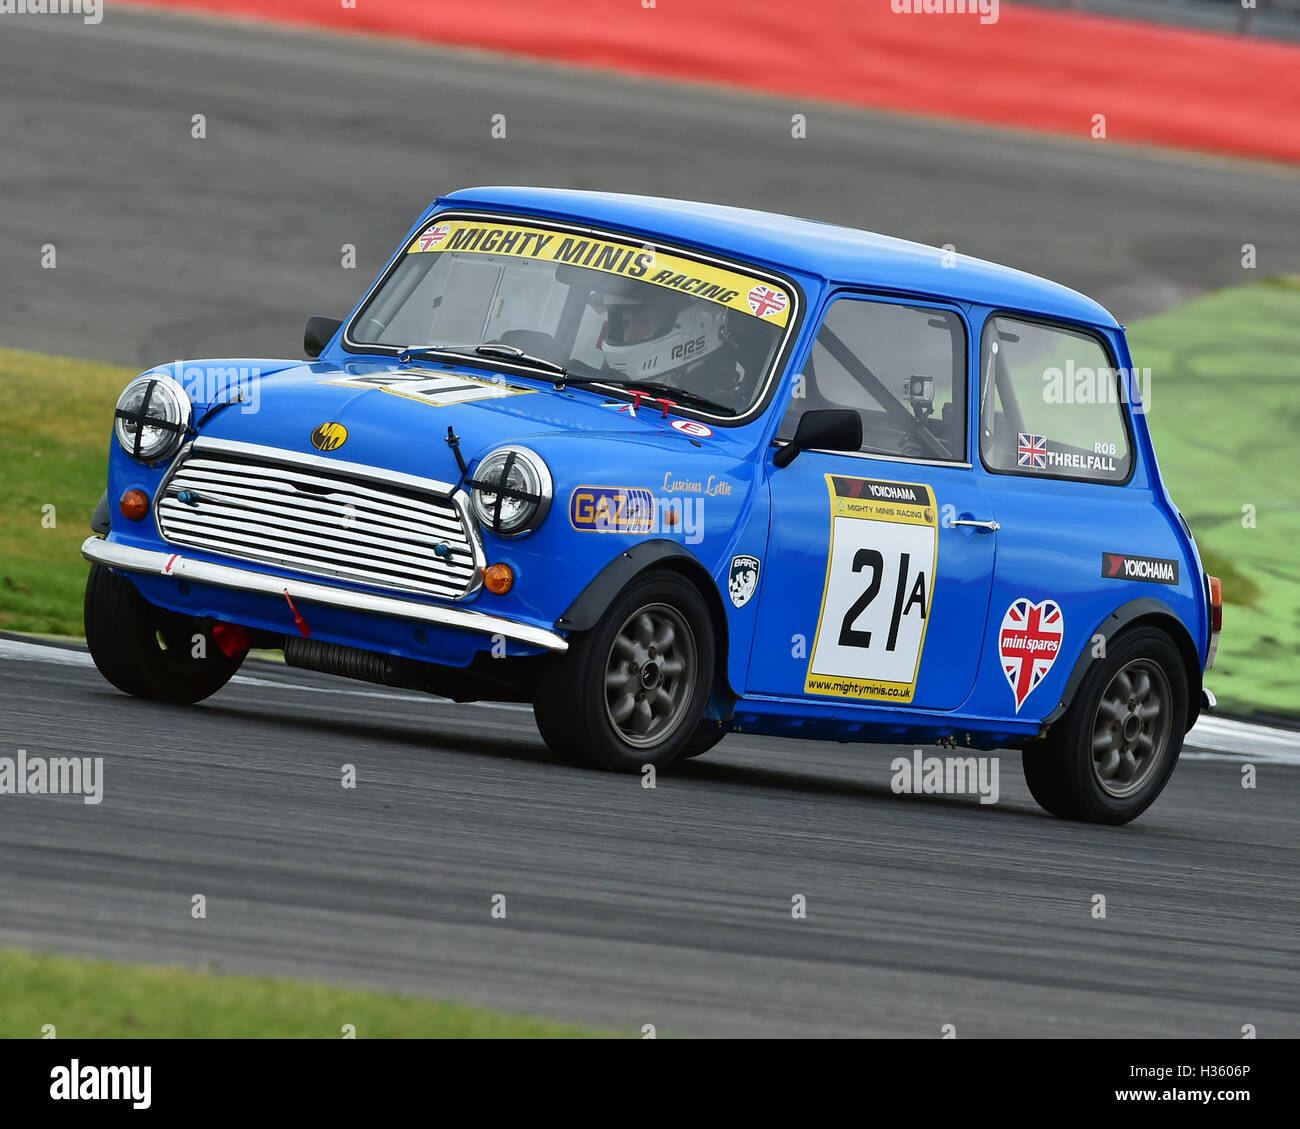 Rob Threlfall, Mighty Mini, 1275, Mighty Mini Championship, Saturday, Silverstone, Silverstone truck festival, Saturday, - Stock Image